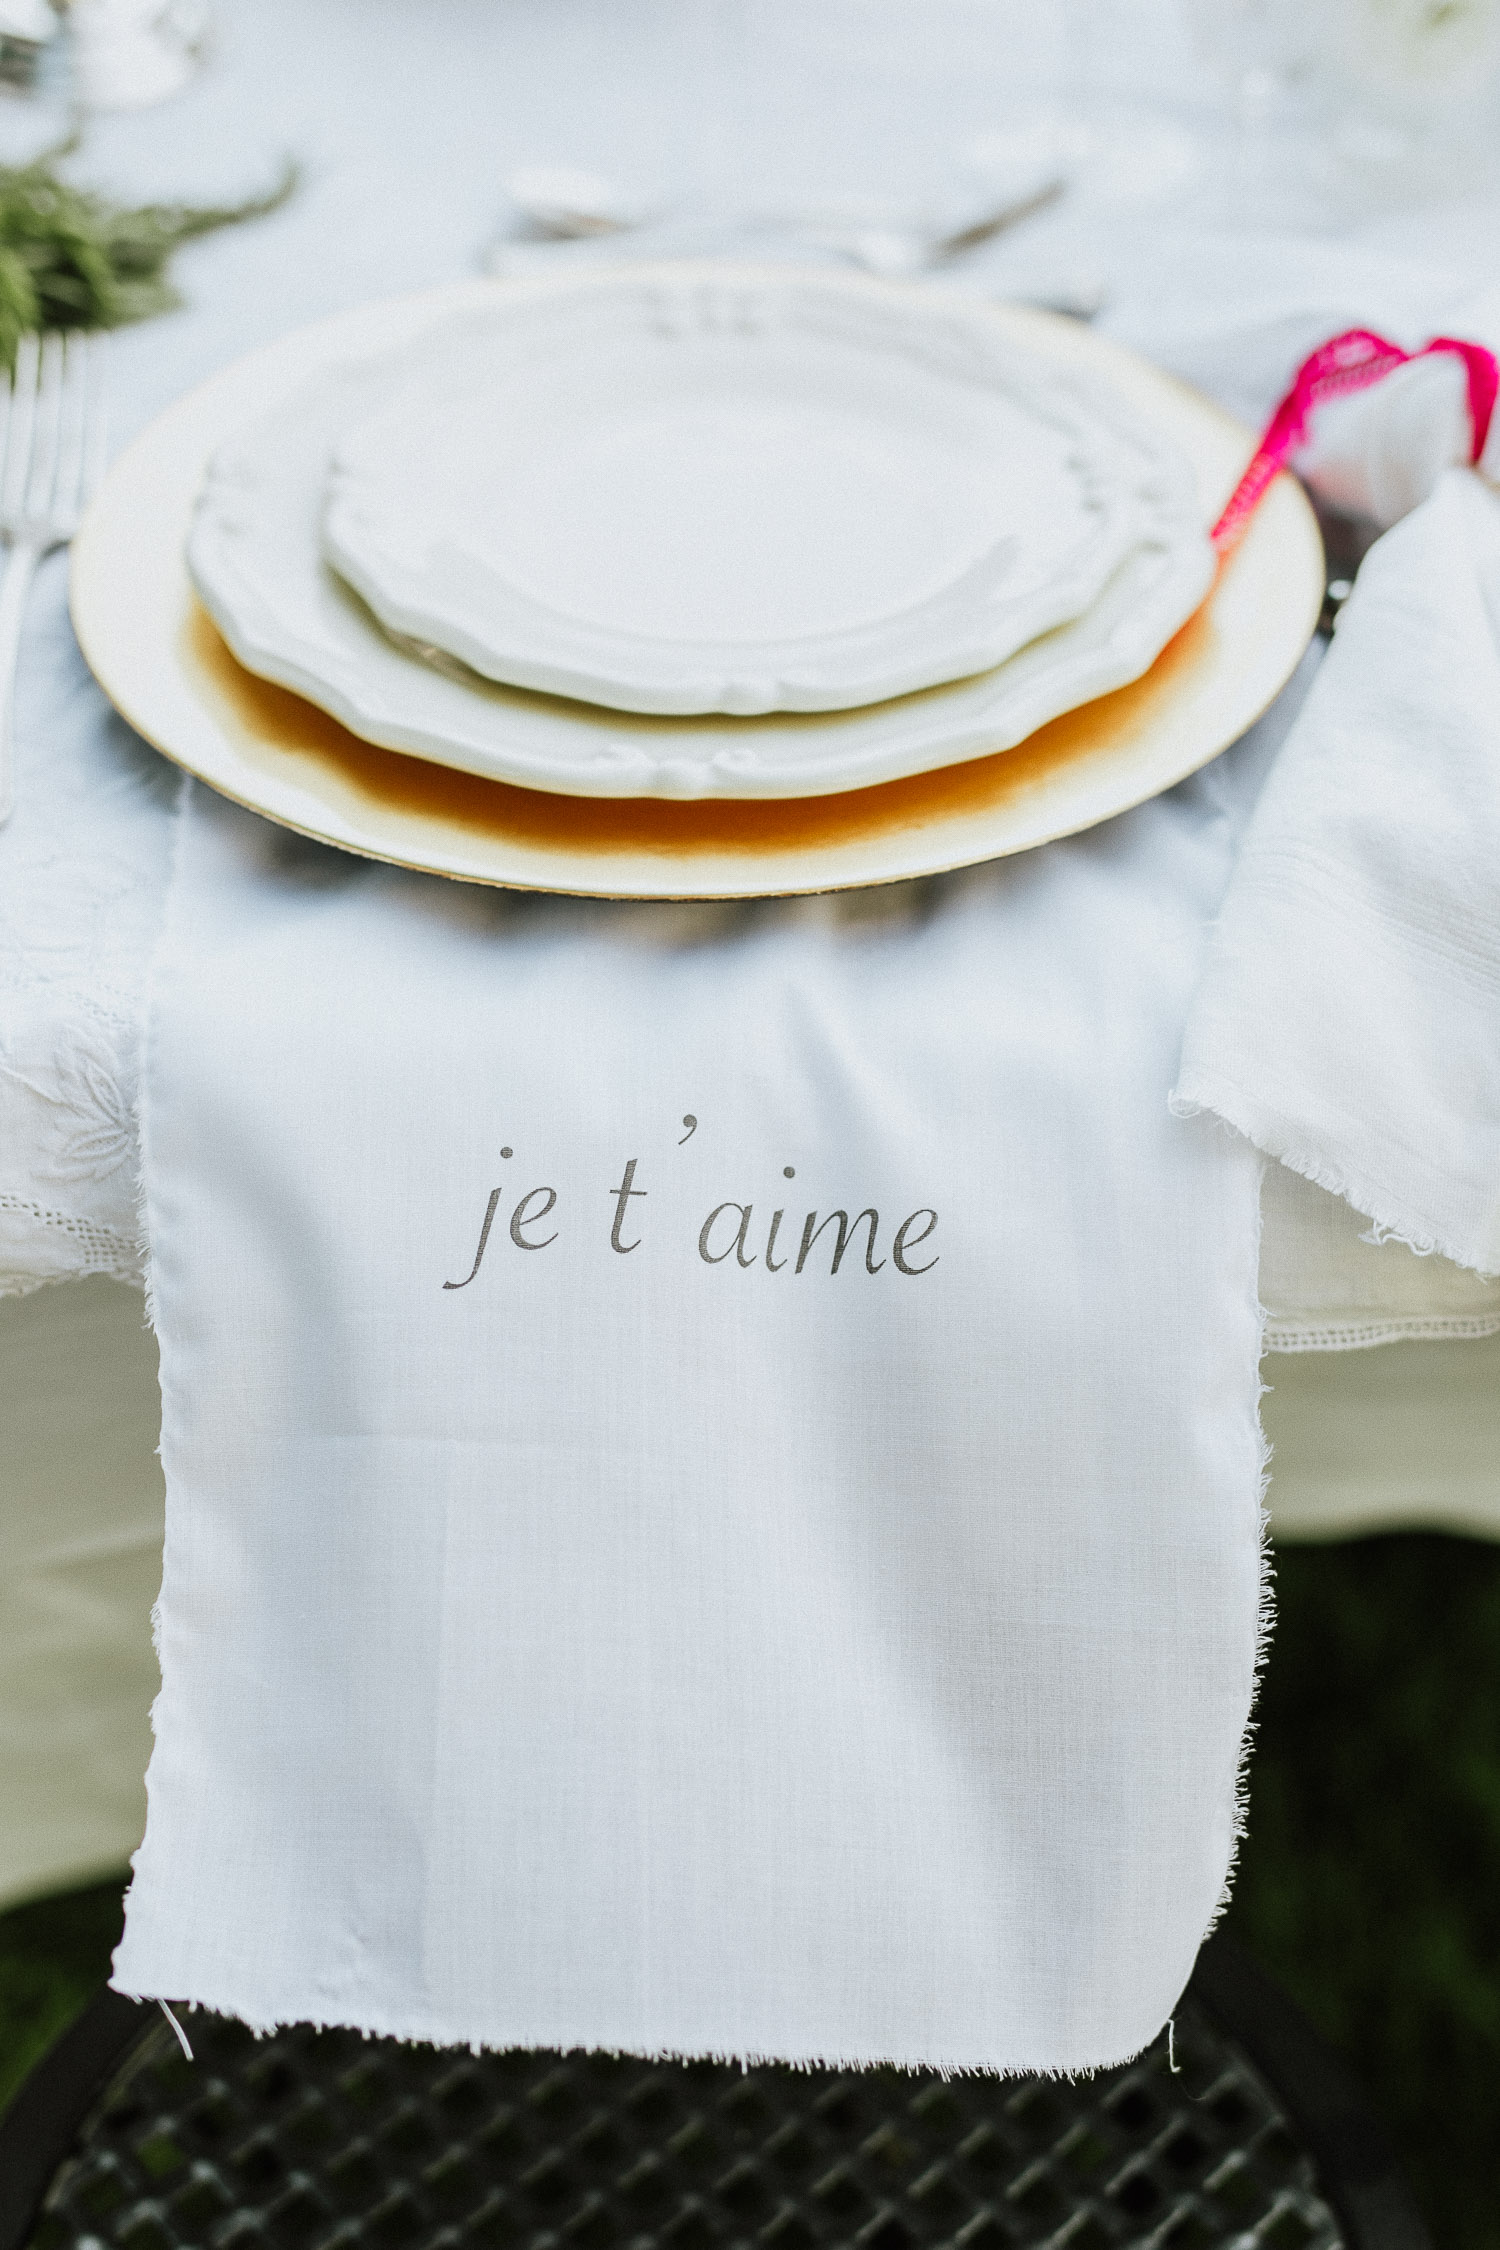 Hand painted napkins with love words for a wedding table setting at Villa Beccaris in Monforte d'Alba